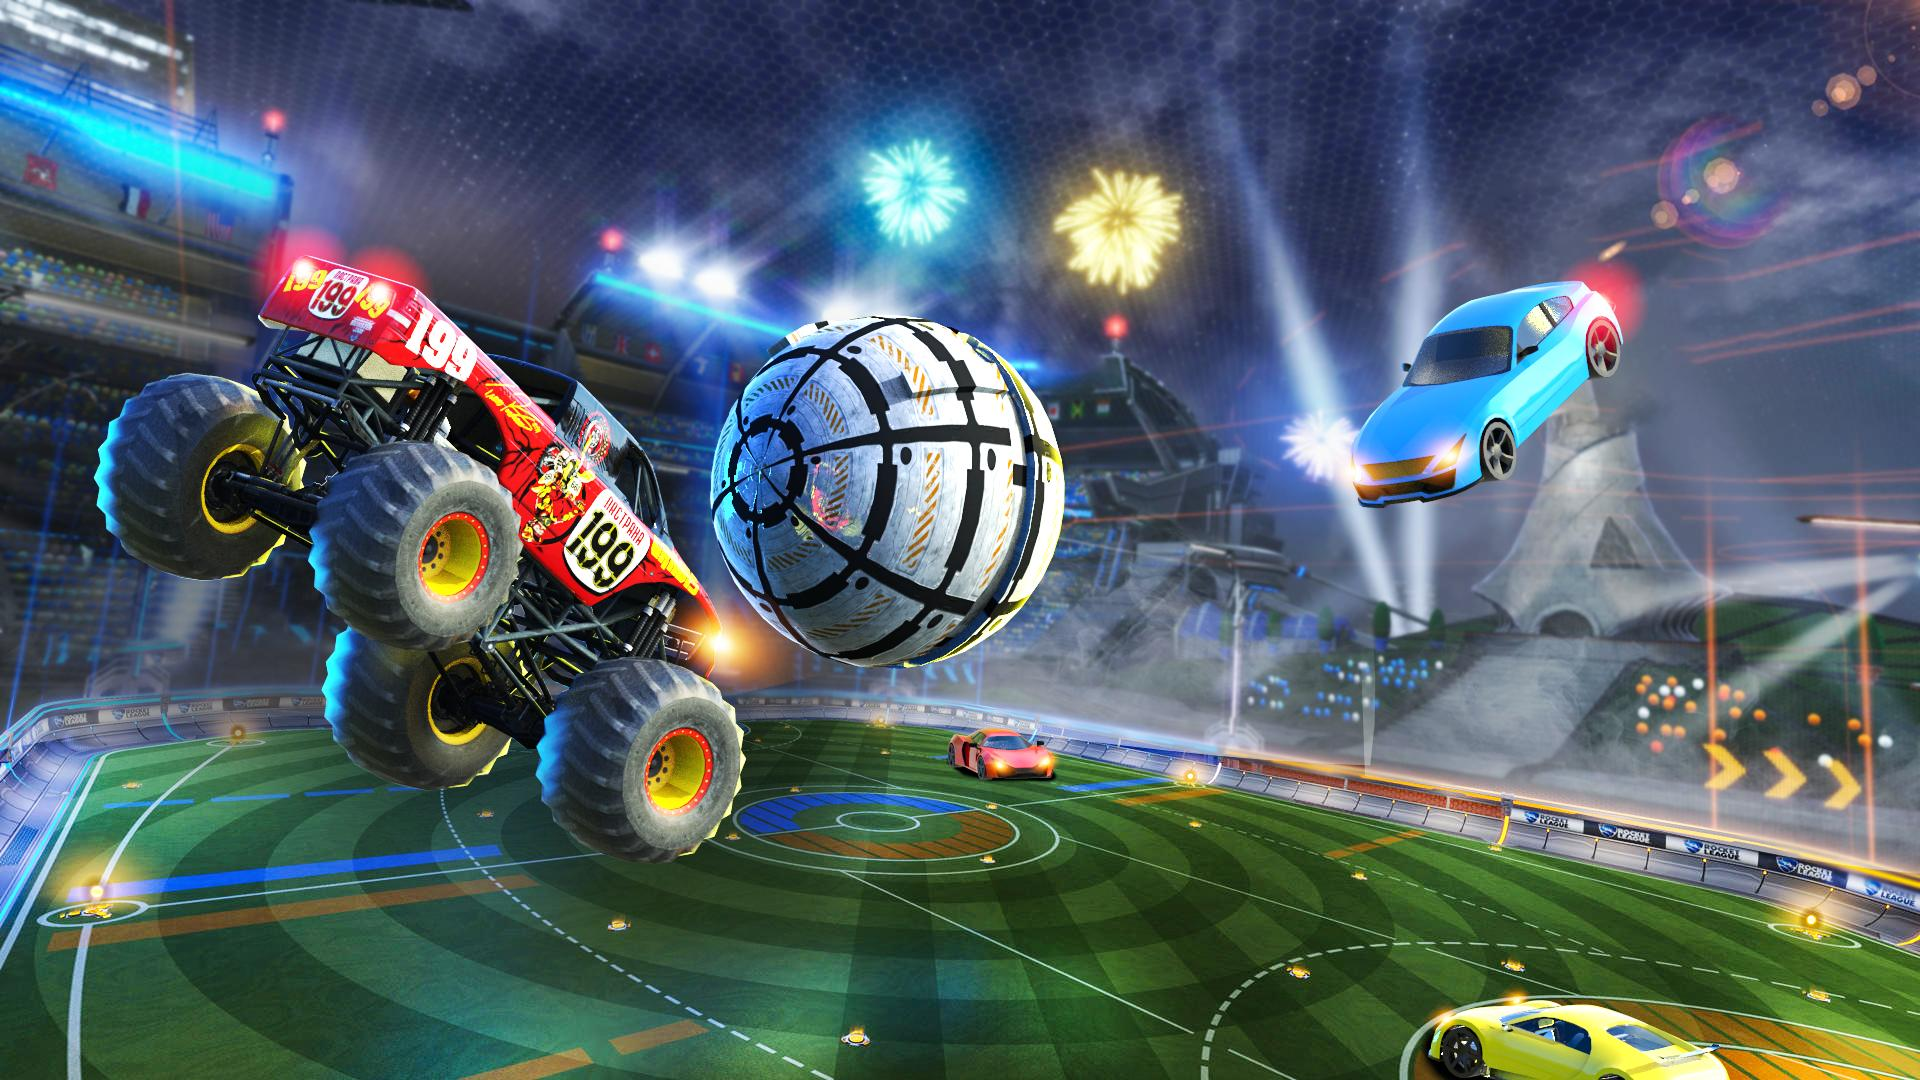 Rocket Car Soccer league - Super Football 1.7 Screenshot 5